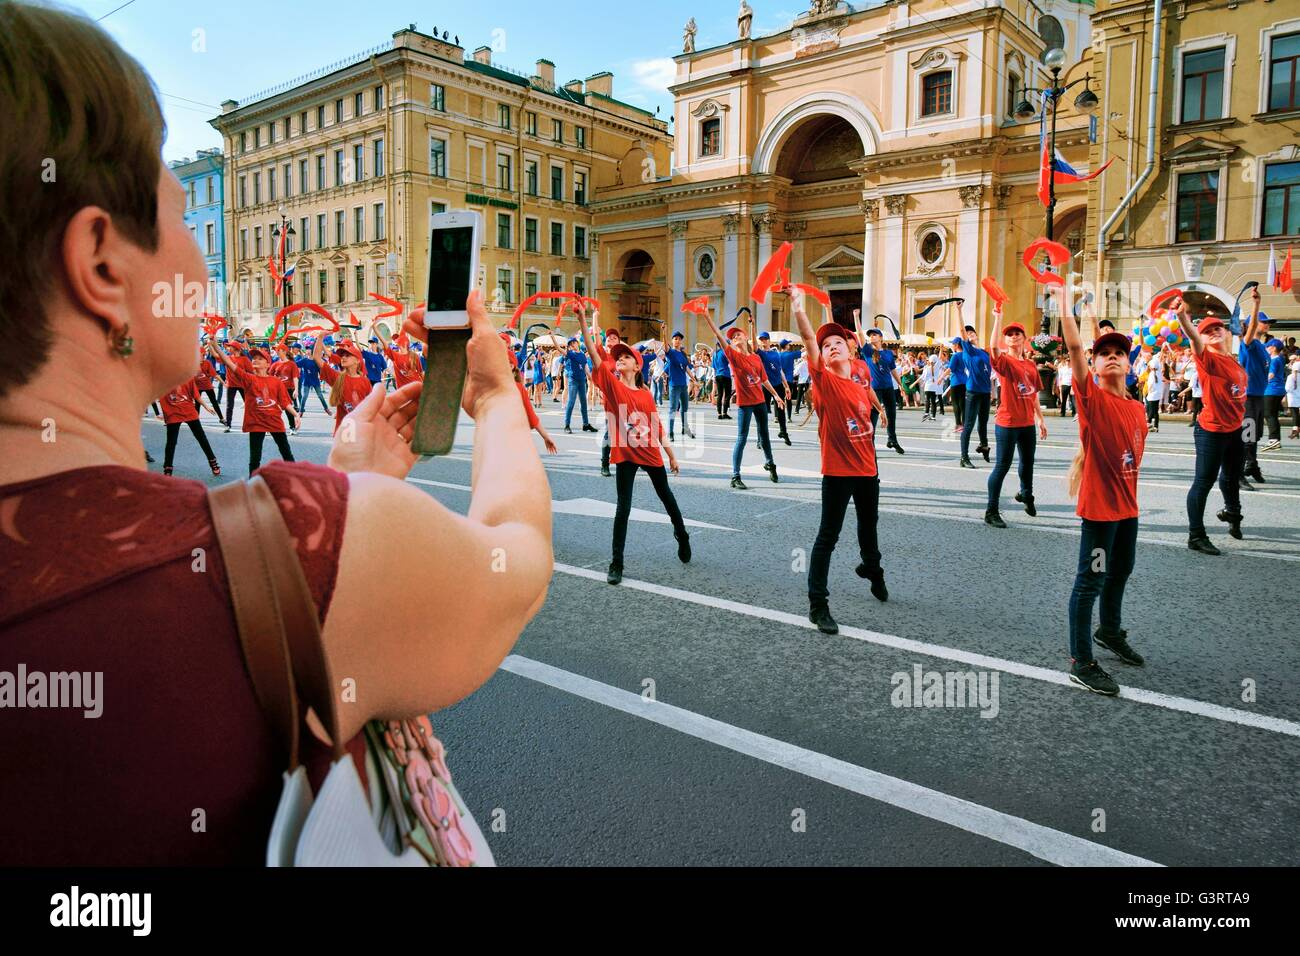 Russia. Schoolchildren perform song and dance routines on Nevsky Prospekt during St. Petersburg Annual City Day - Stock Image